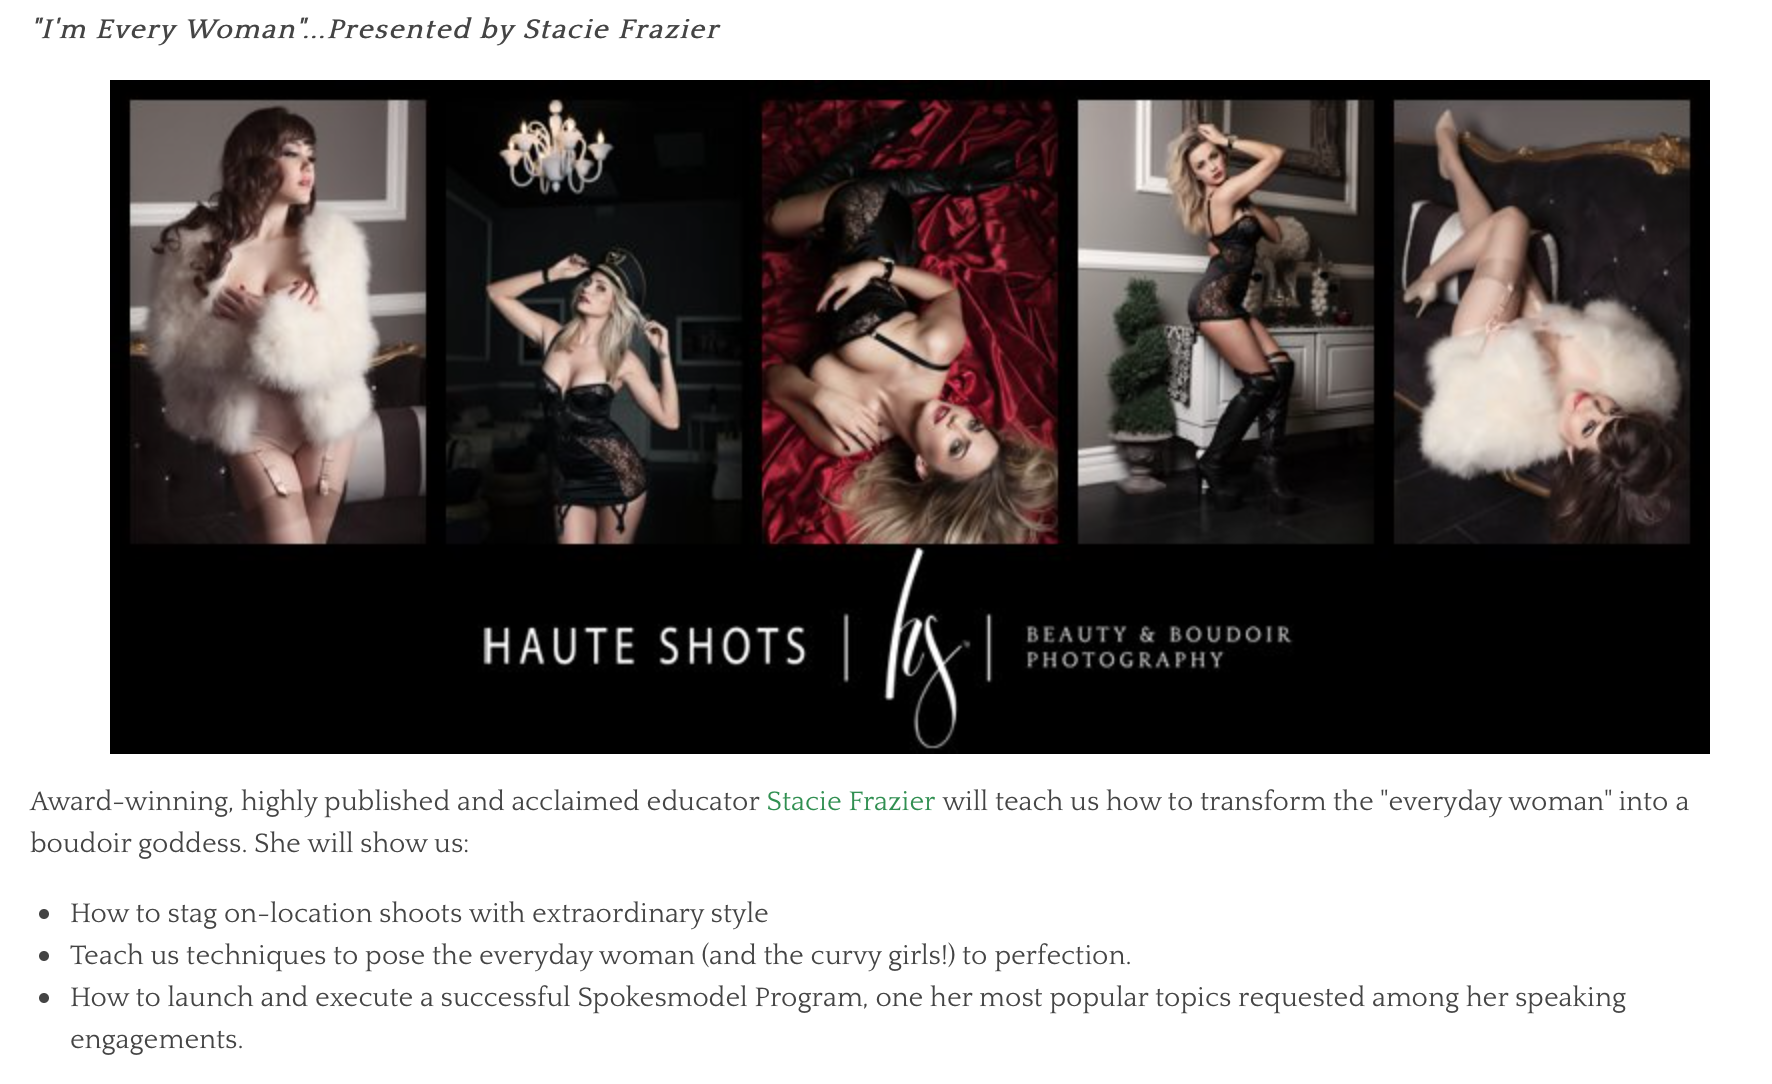 boudoir photography, boudoir teacher, boudoir photography educator